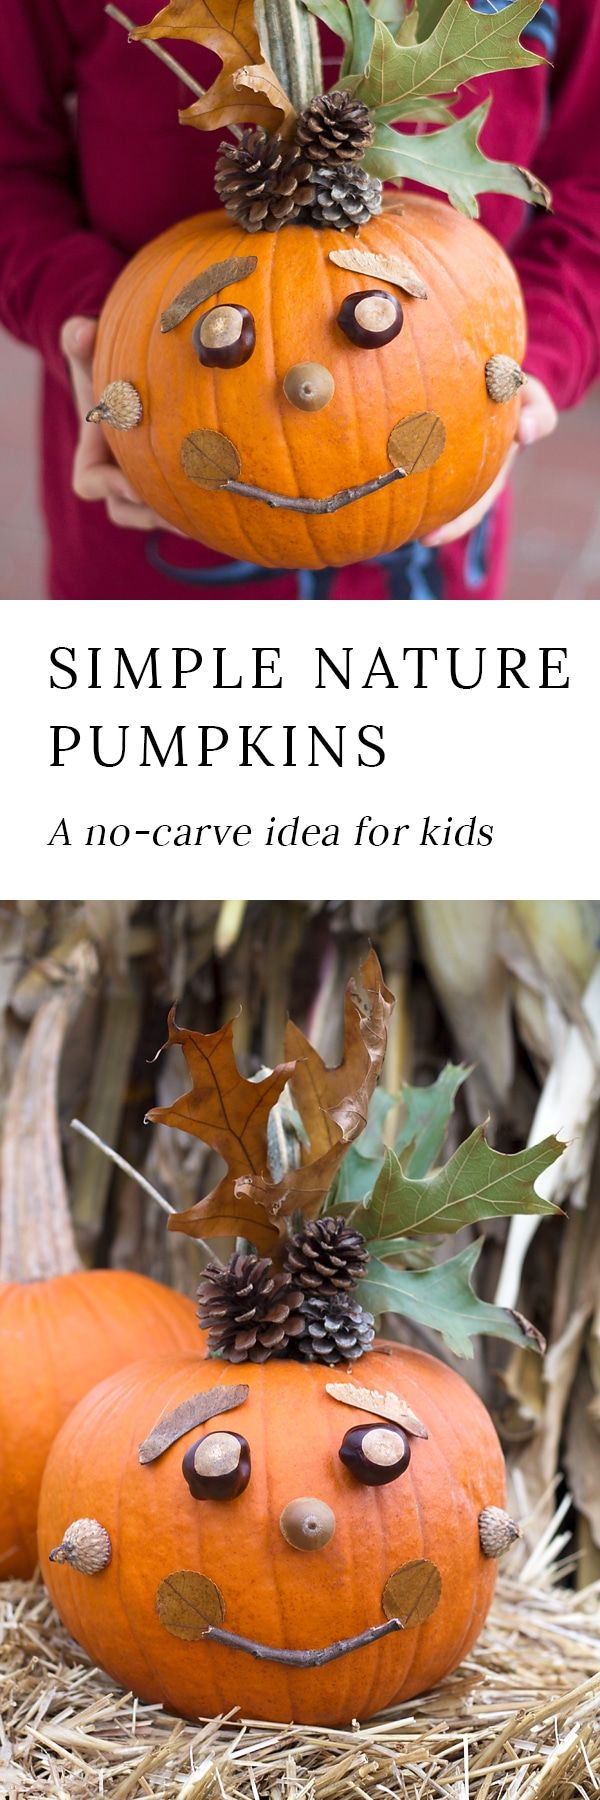 Kids will love creating a whimsical No-Carve Nature Pumpkin with pinecones, nuts, seeds, leaves, and twigs. Perfect autumn fun for families! #halloween via @https://www.pinterest.com/fireflymudpie/